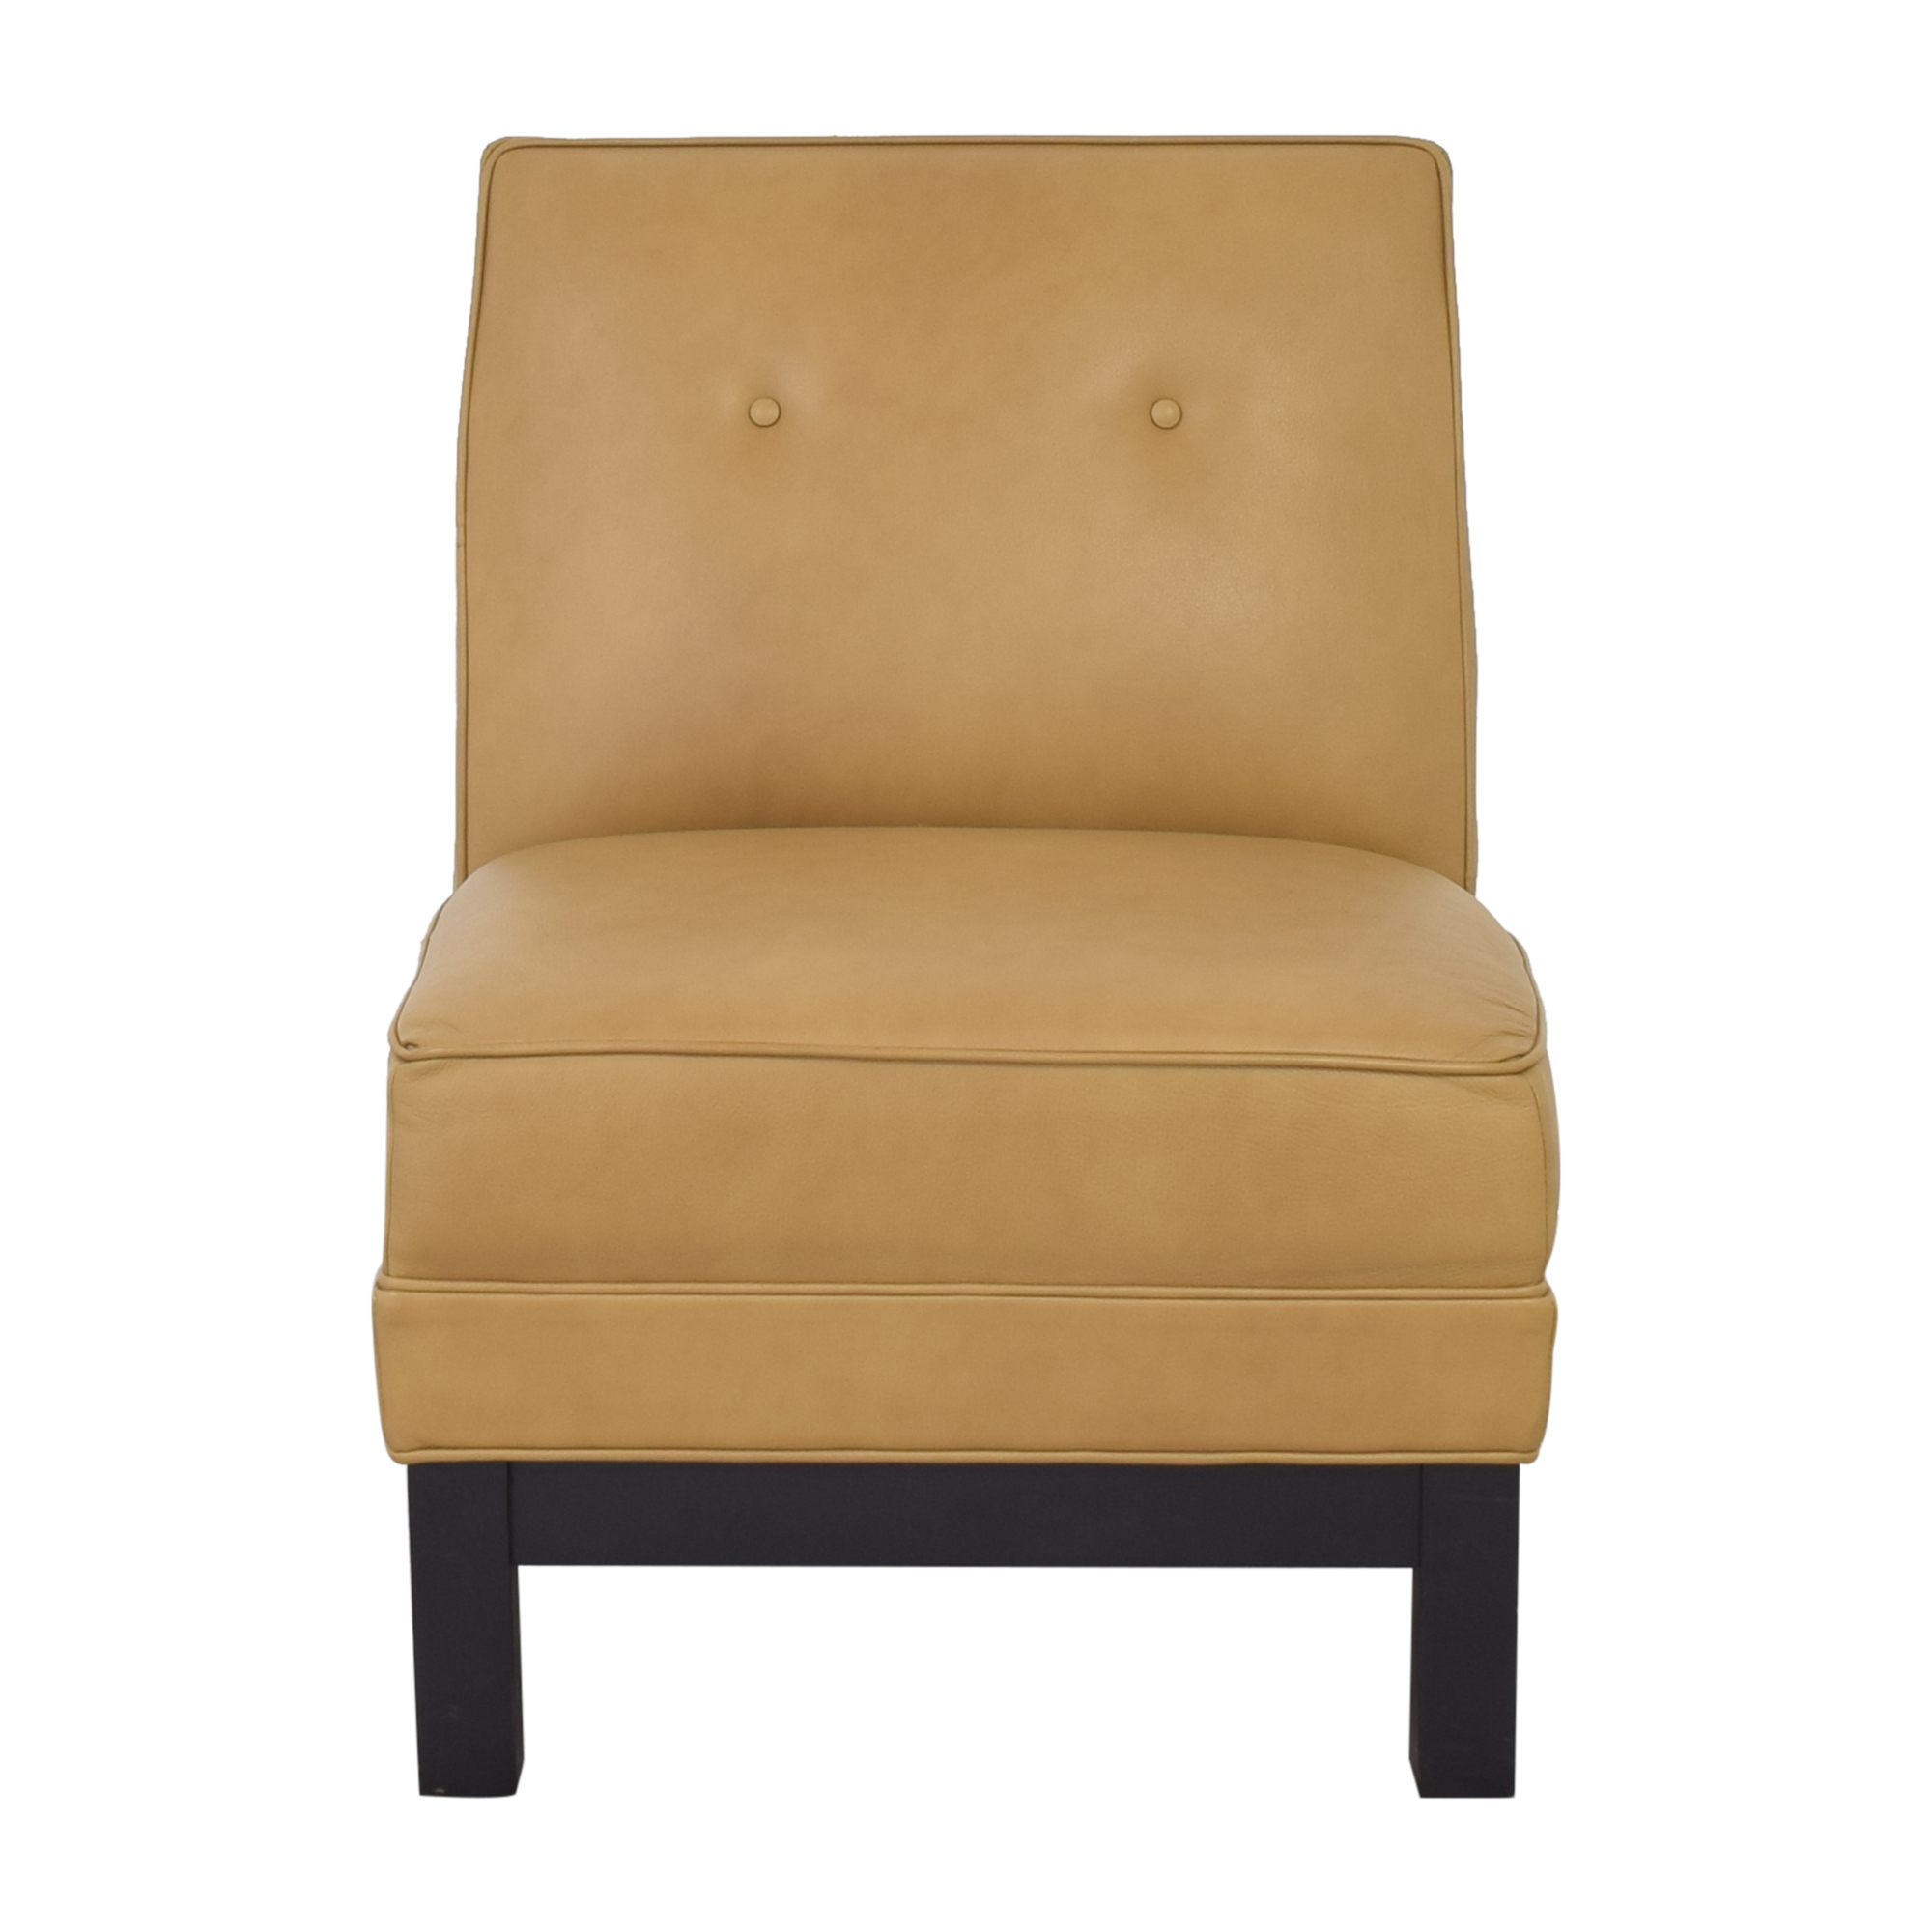 shop Mitchell Gold + Bob Williams Liana Chair Mitchell Gold + Bob Williams Chairs